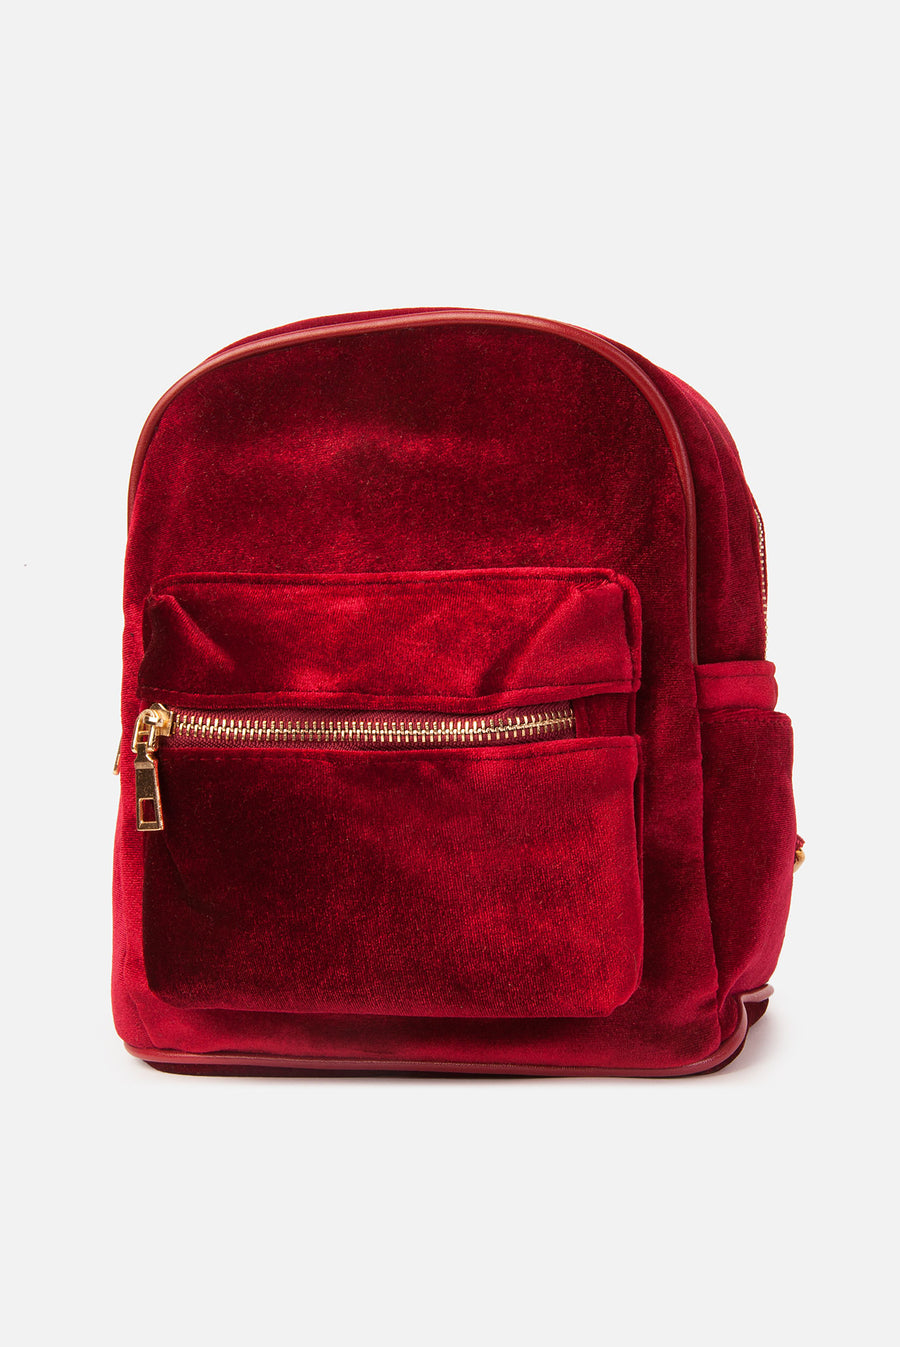 Velvet Valentine Backpack (4 Colors)